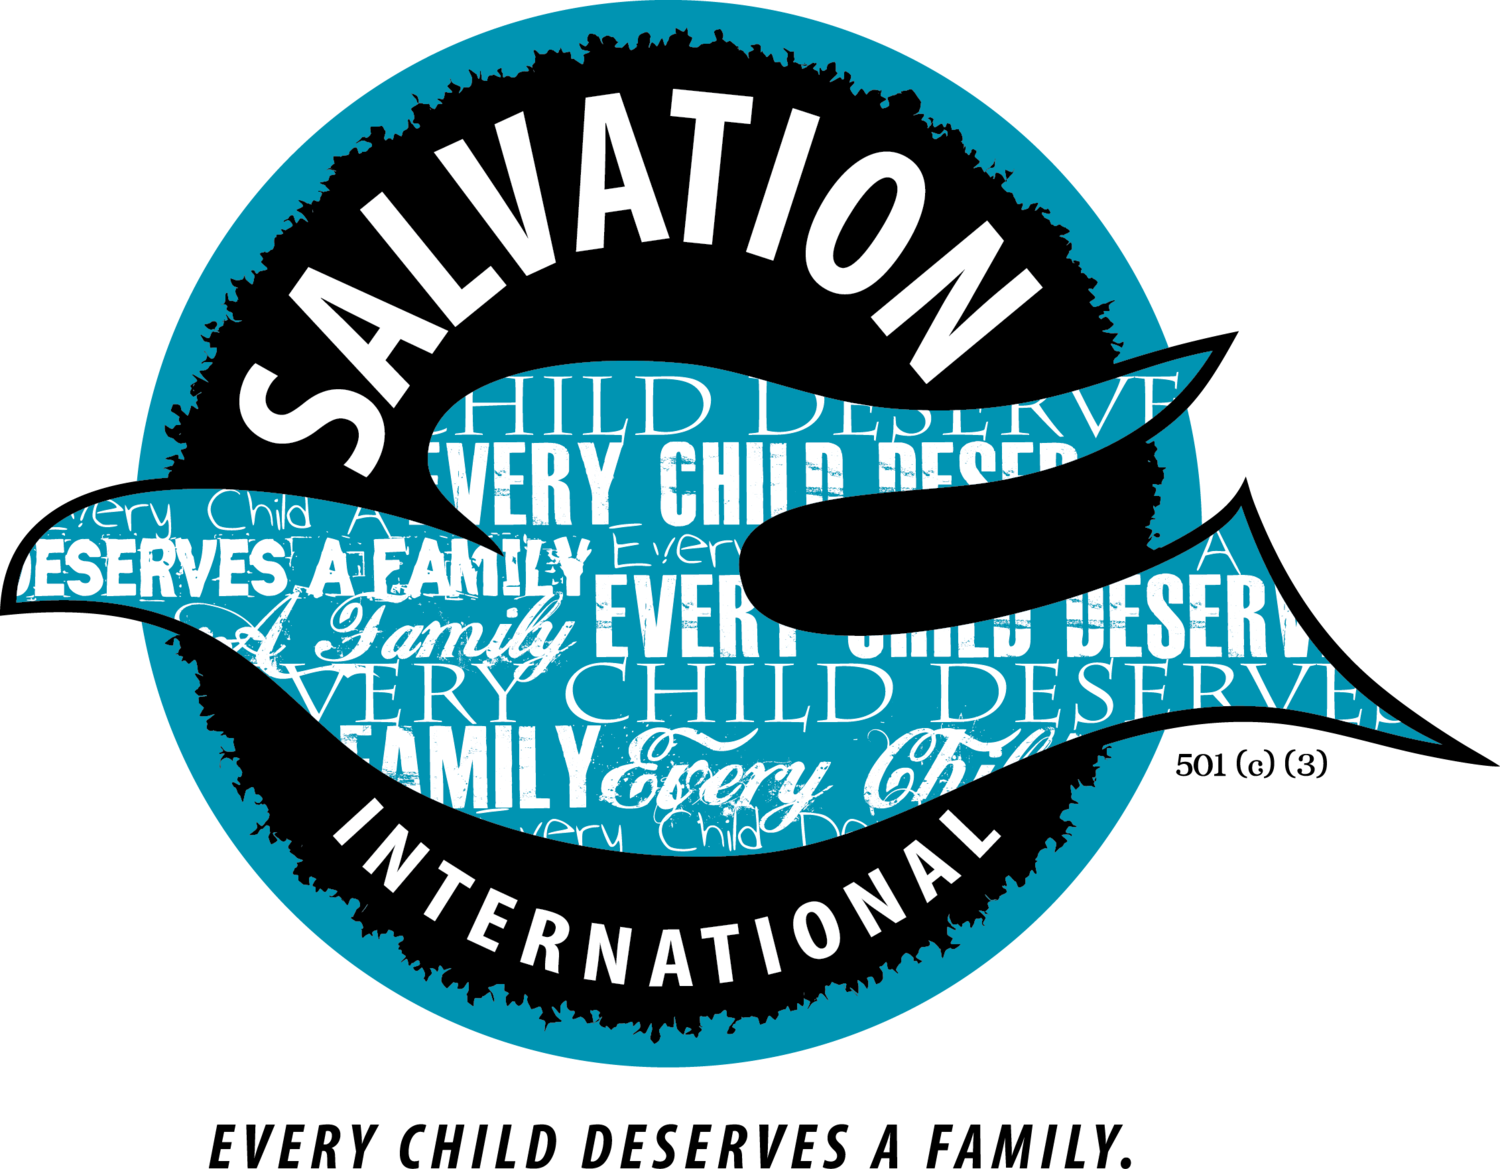 SALVATION INTERNATIONAL 2018